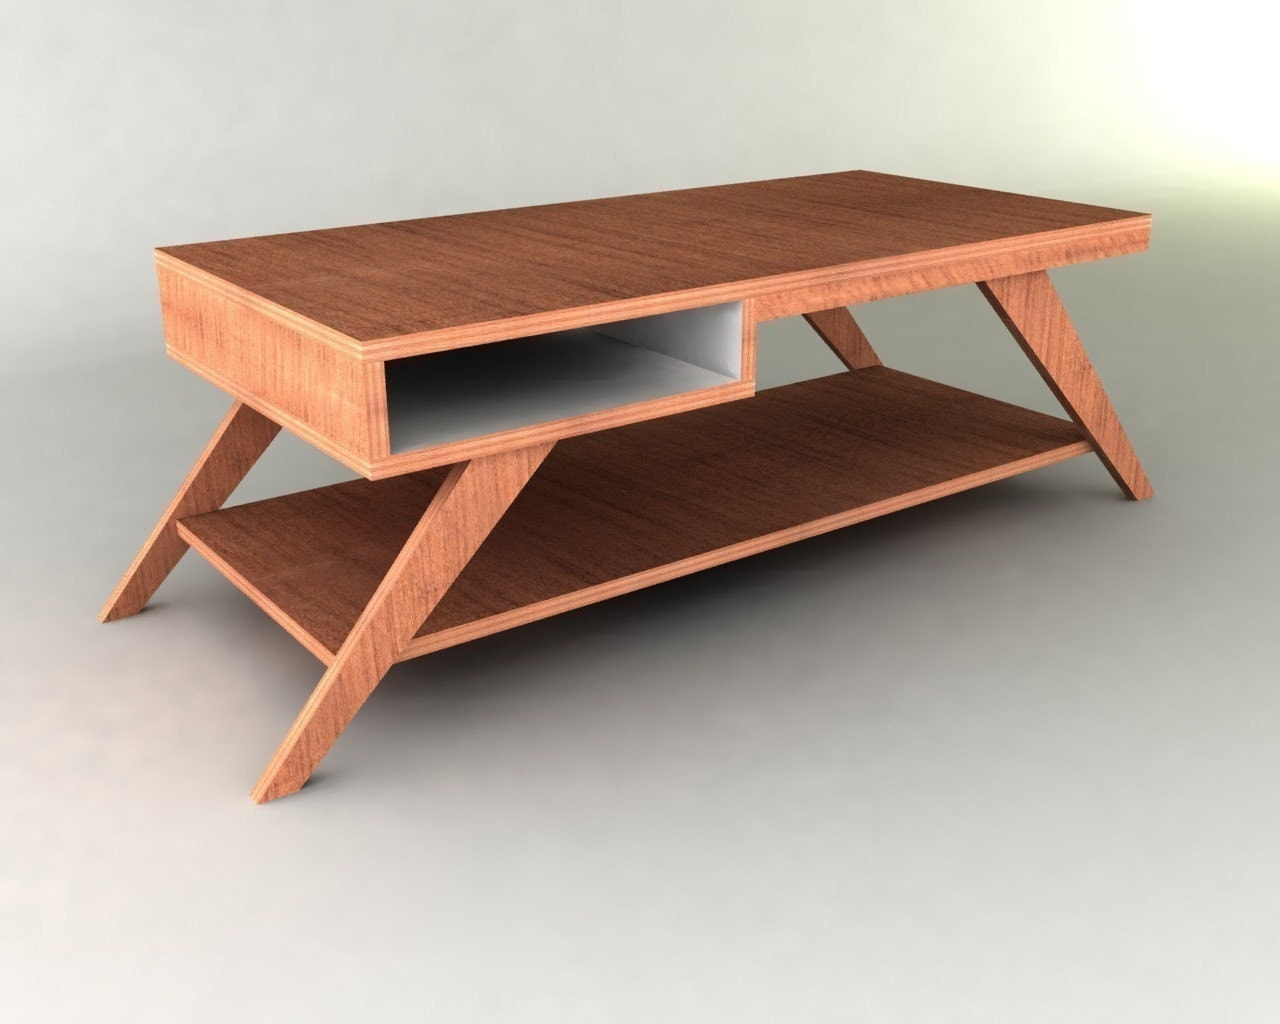 Retro modern eames style coffee table furniture plan for Retro furniture